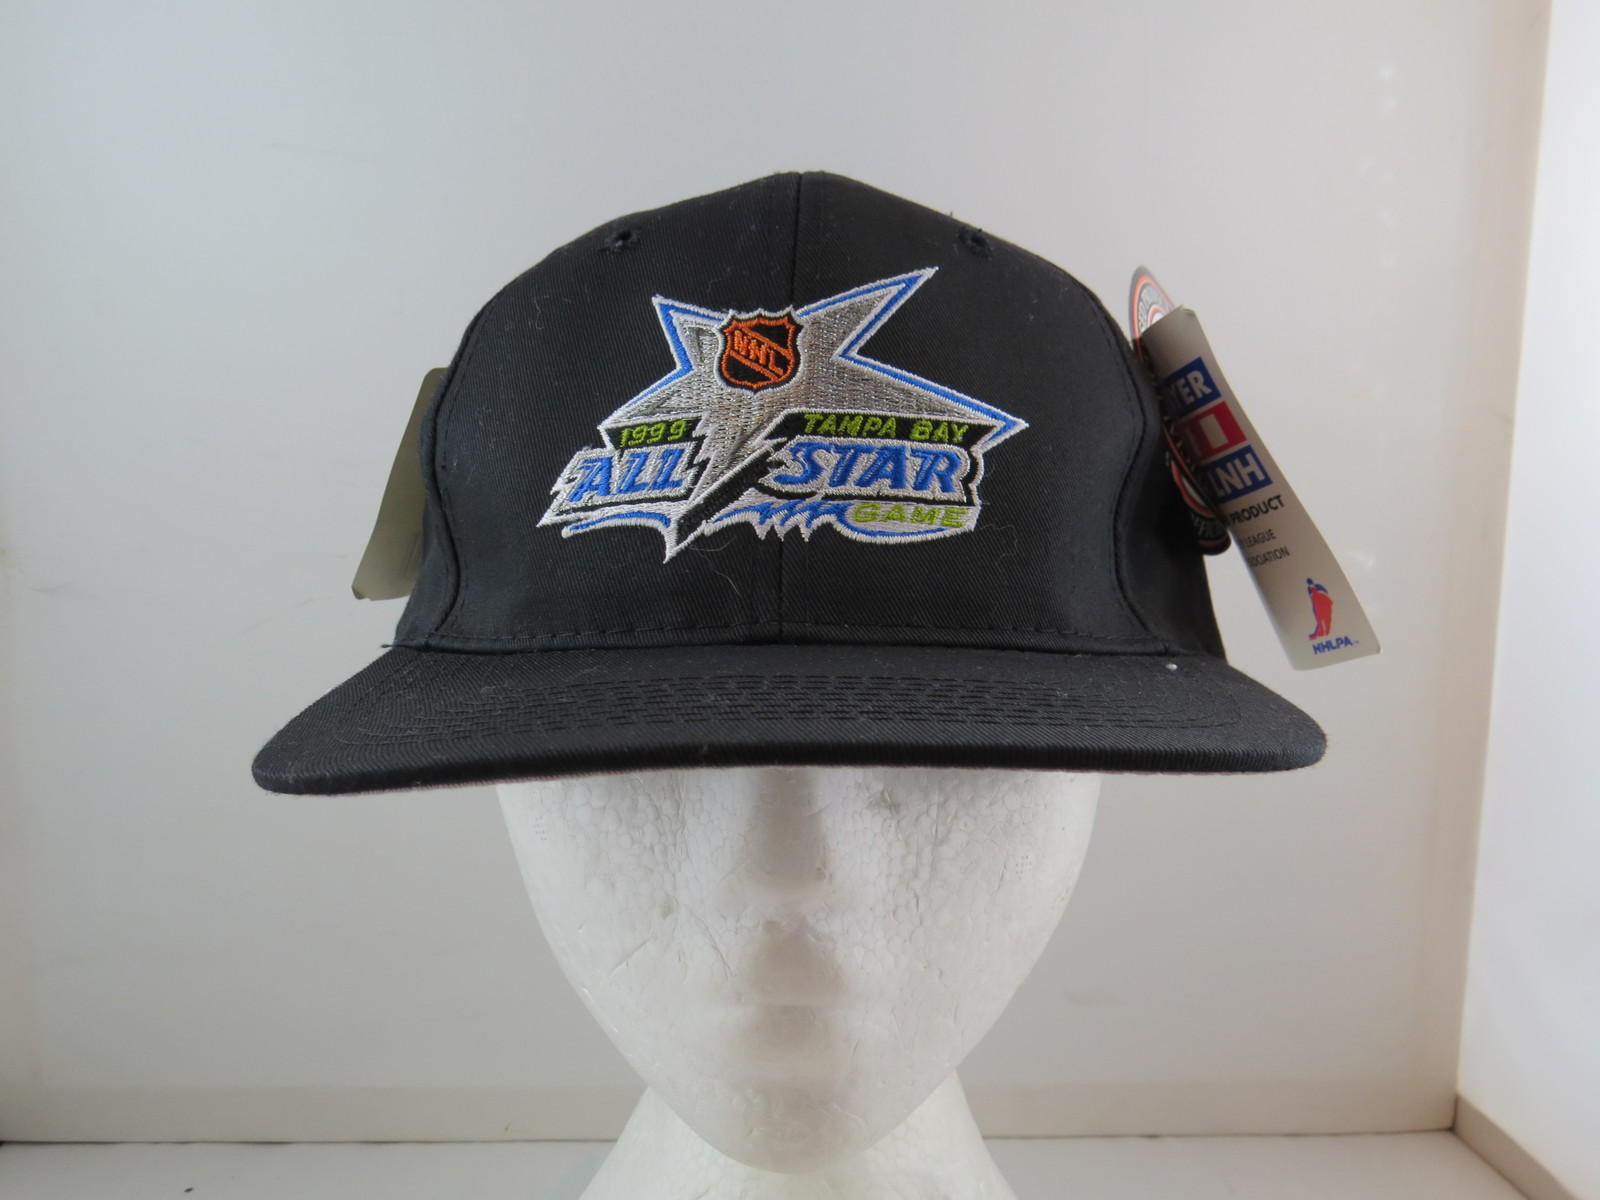 promo code cd1d9 2bb82 1999 NHL All Star Hat Tampa Bay- By Starter - Adult Snapback - One Size  Fits All -  49.00